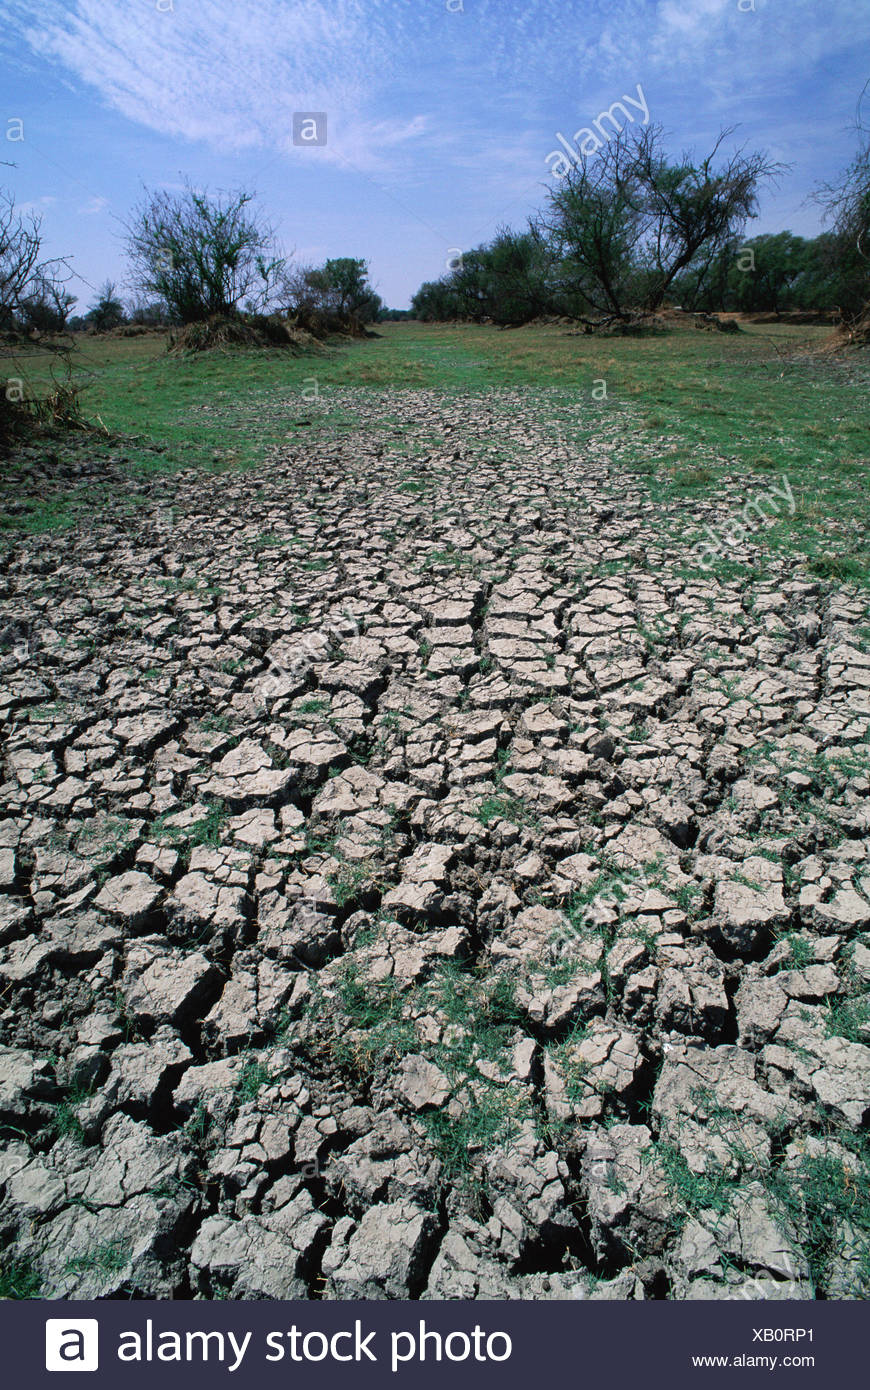 Cracked earth during severe drought in Keolado Ghana NP Rajasthan India - Stock Image